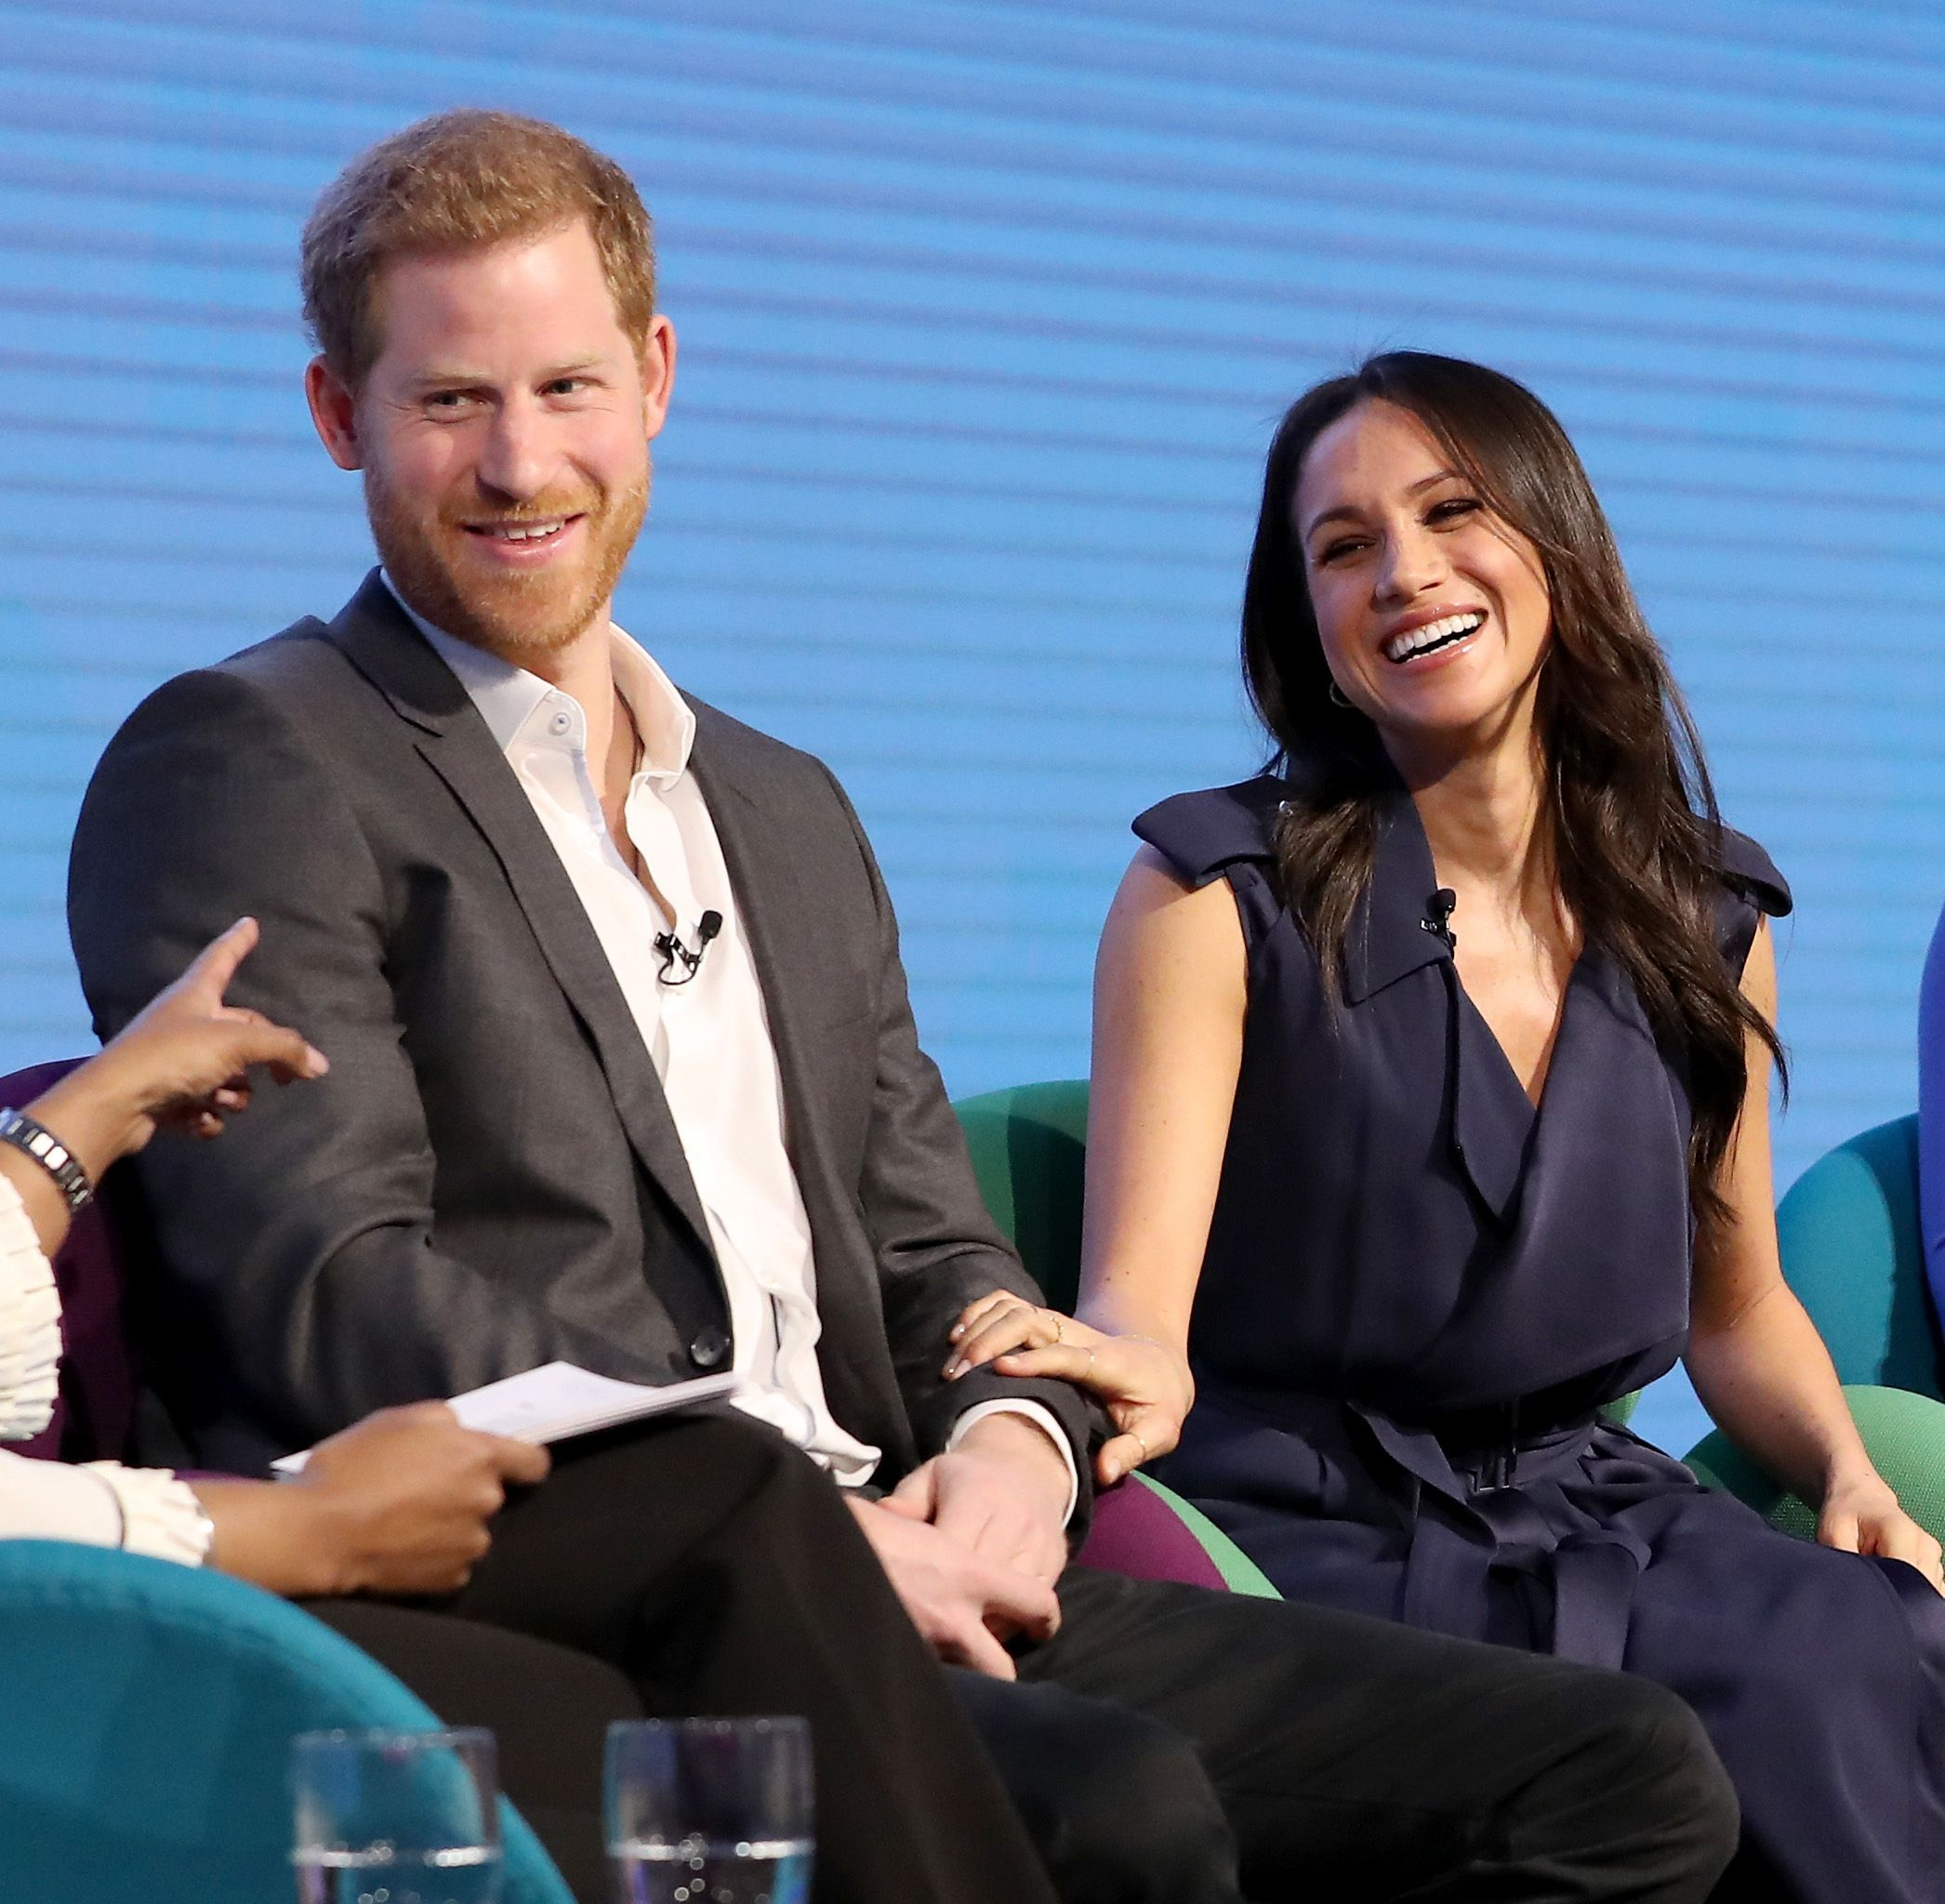 Is a cute Meghan Markle